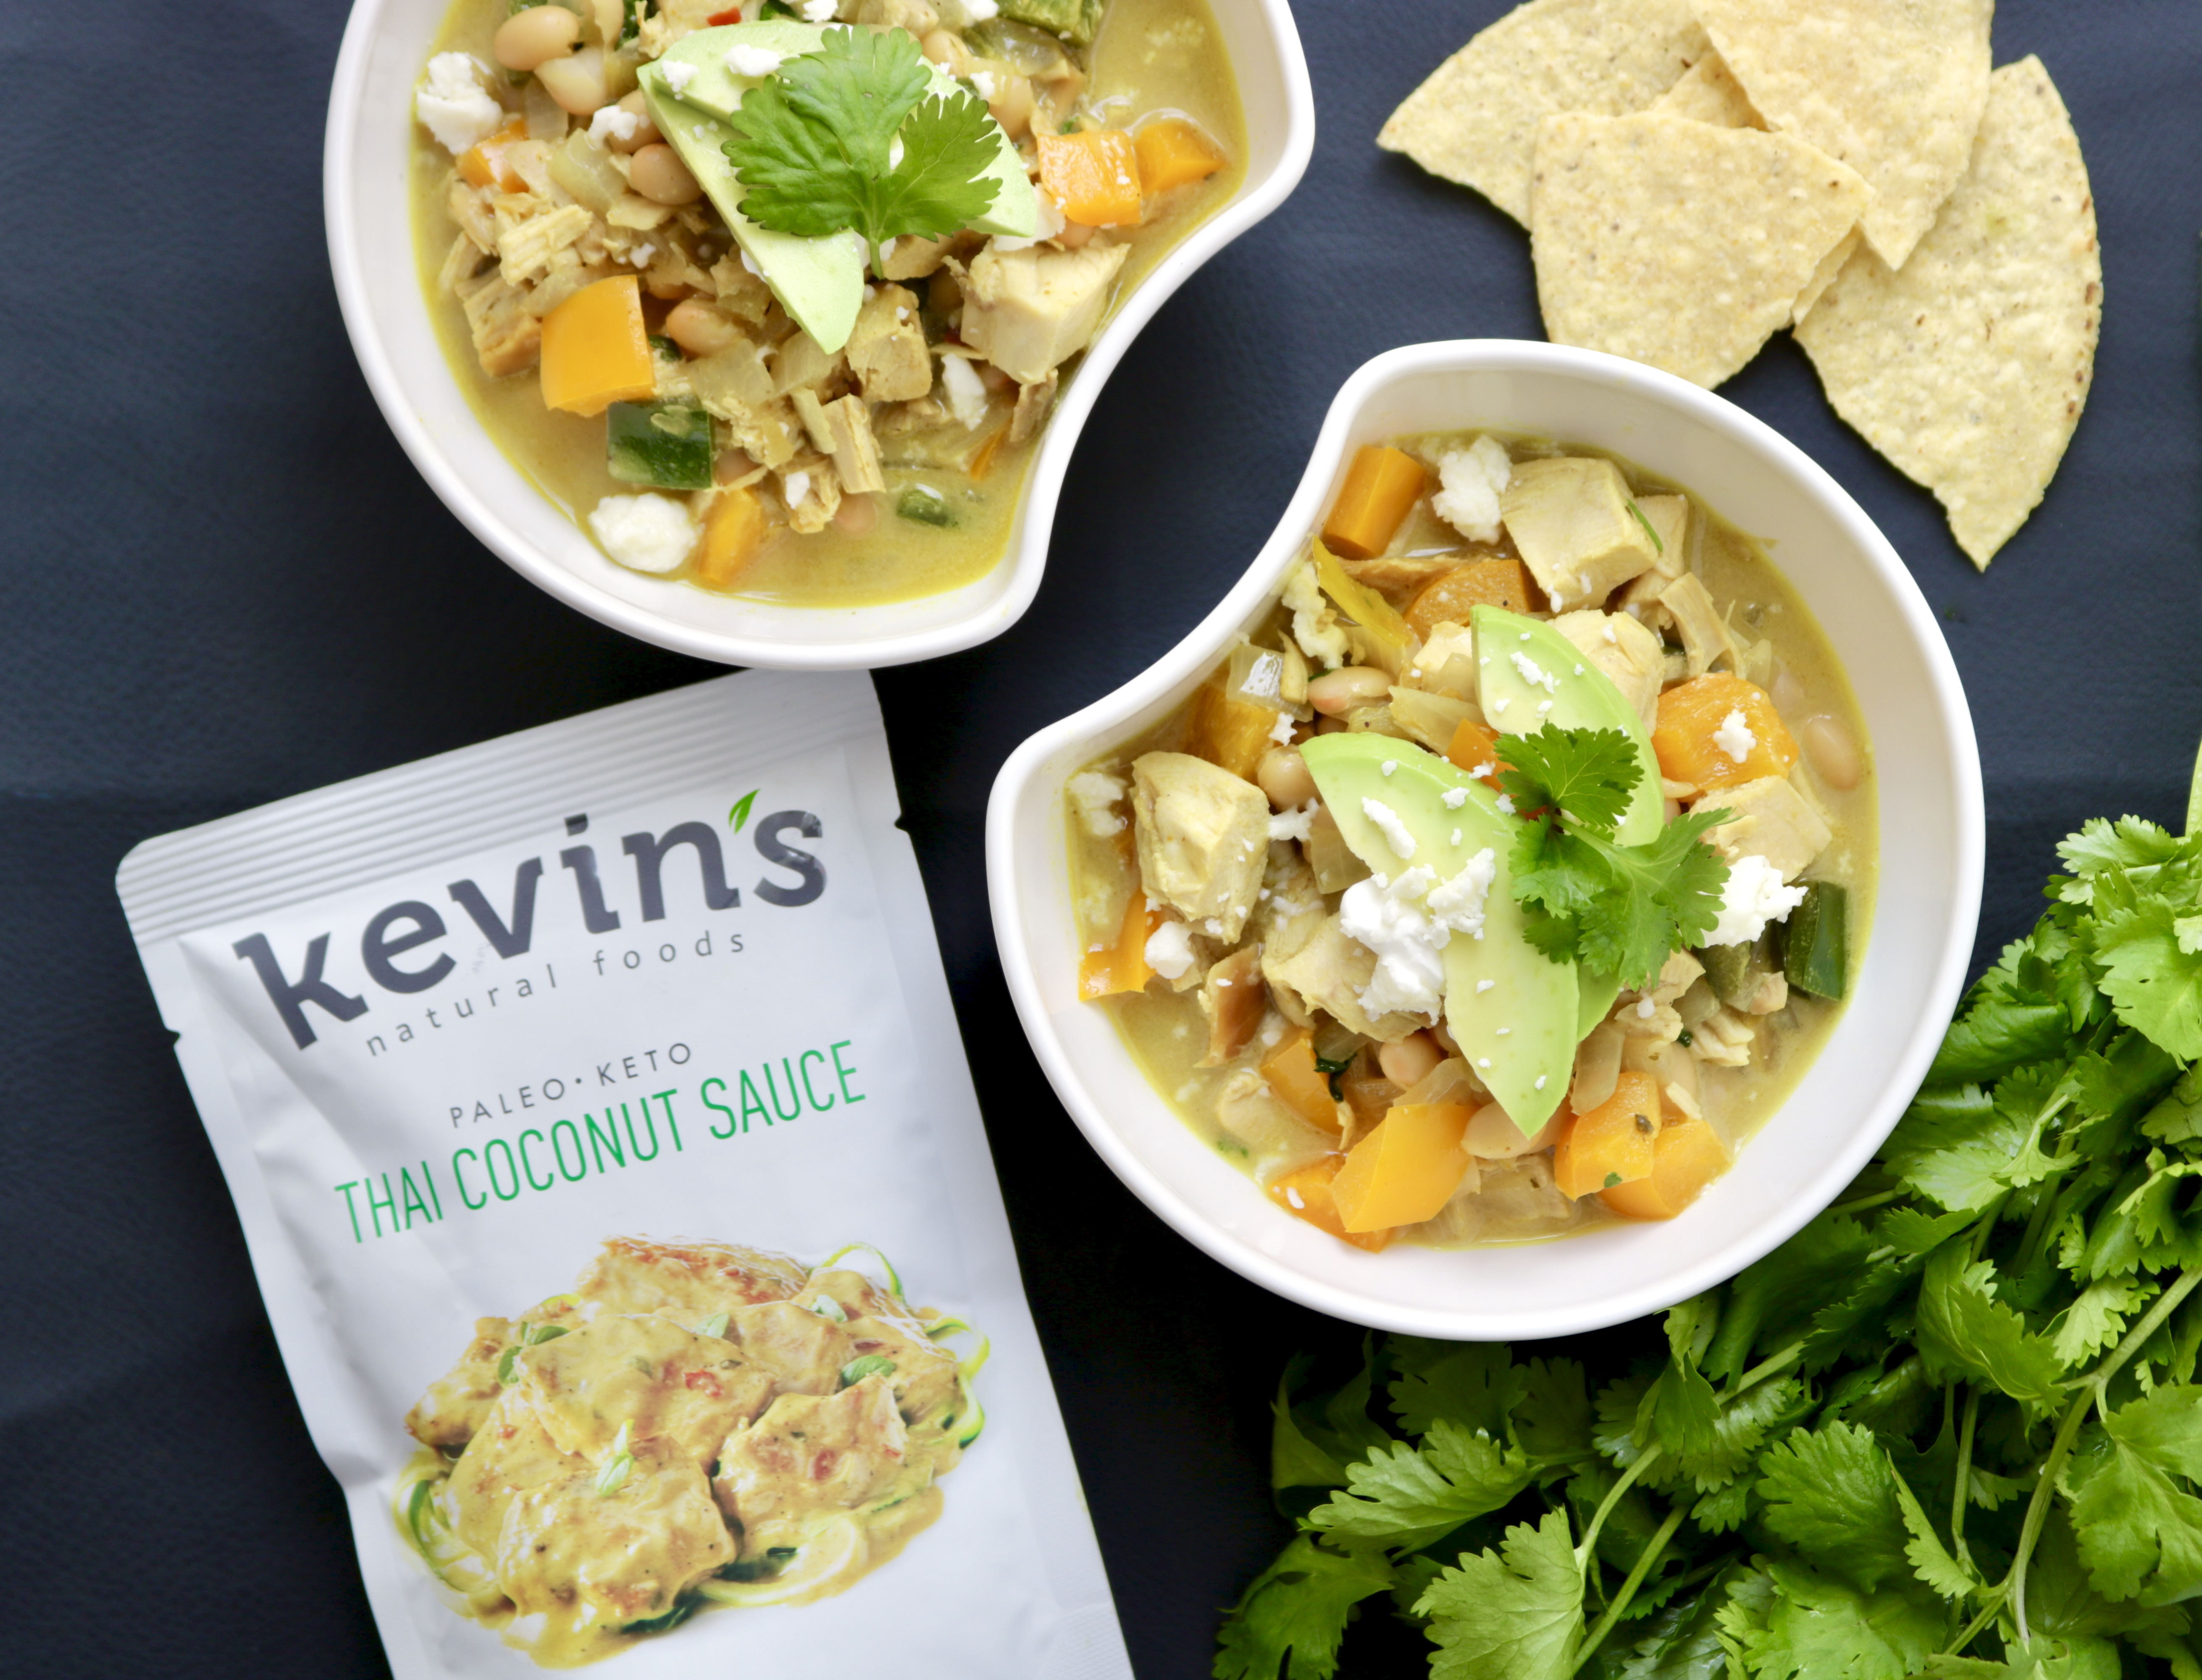 product package with bowls of chili, chips, cilantro